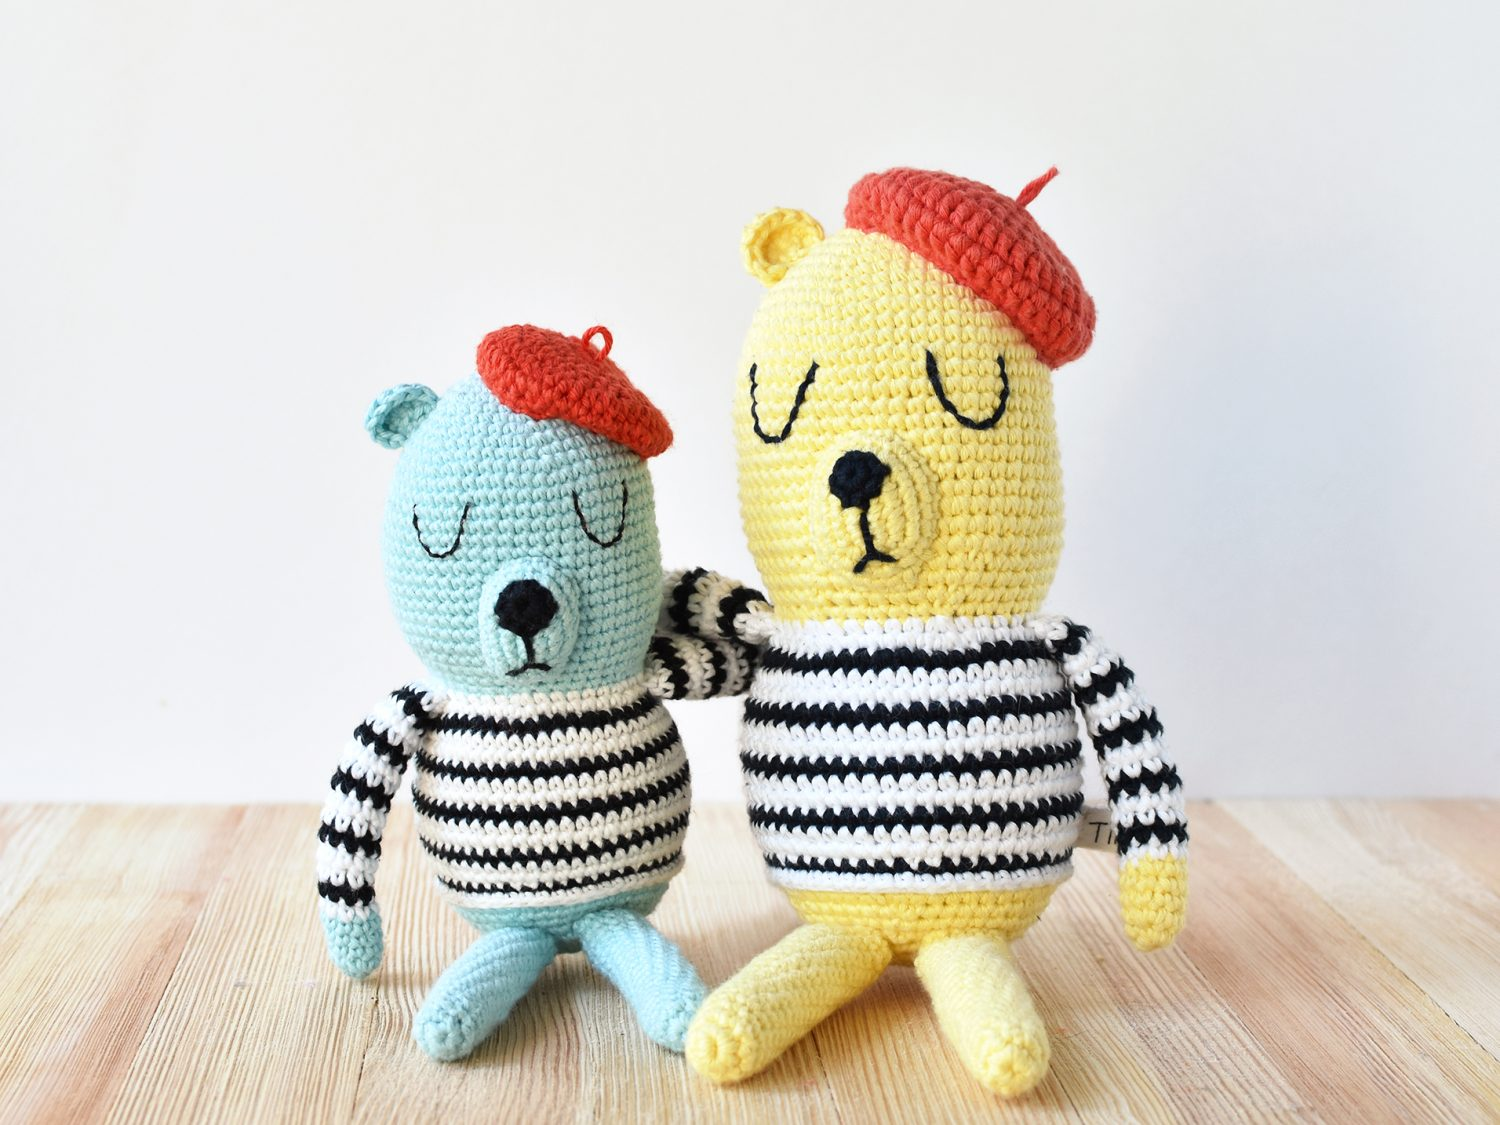 One small blue French bear and one large yellow French bear sit side by side on a wooden plank.